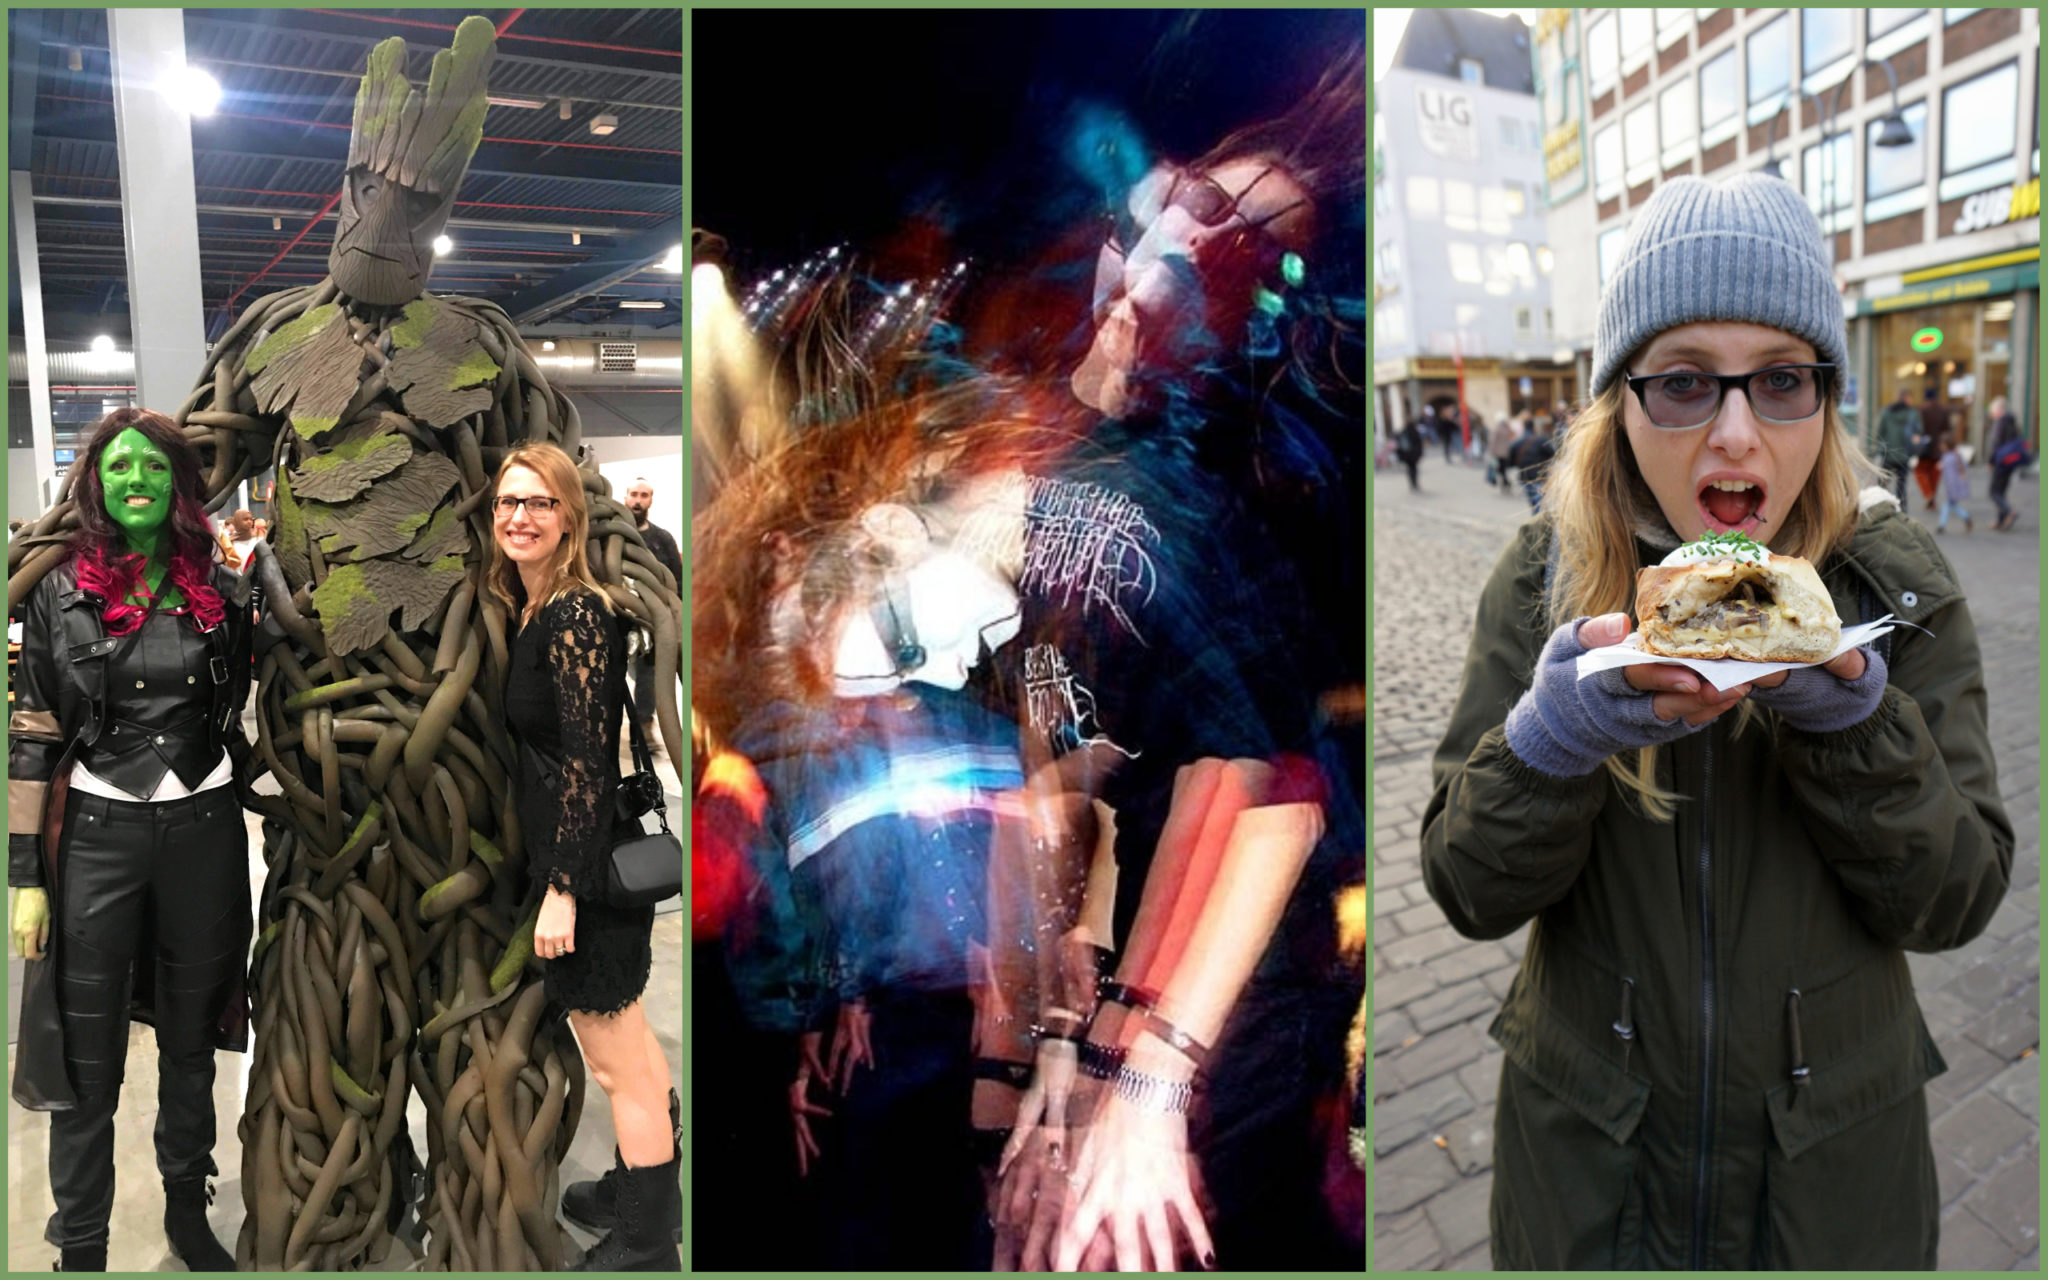 Me being a total geek, headbanging and eating.